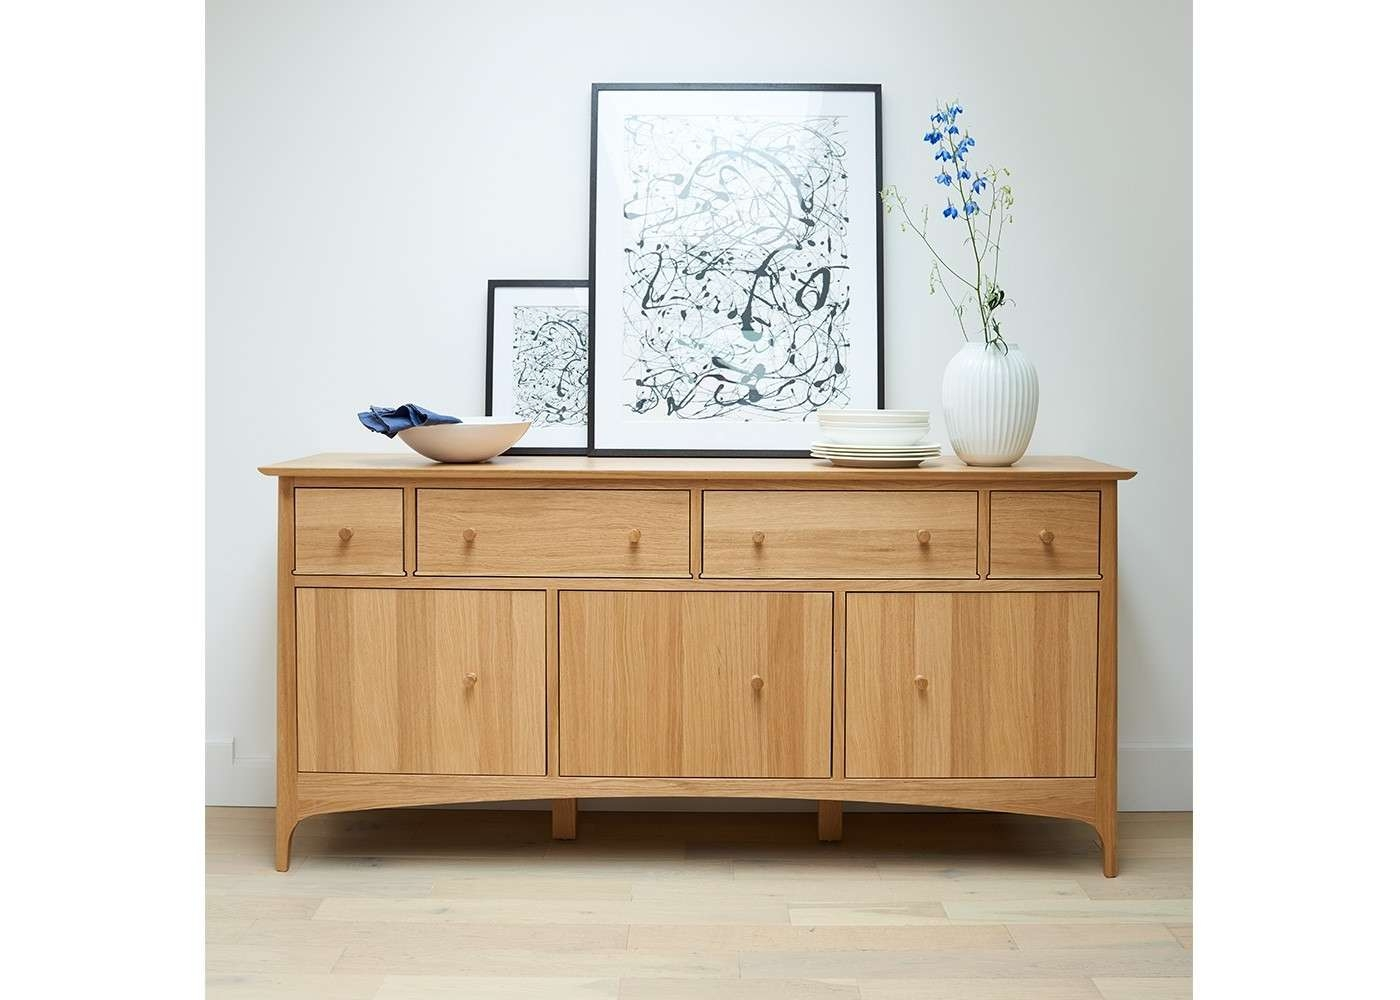 20 Ideas of Living Room Sideboards